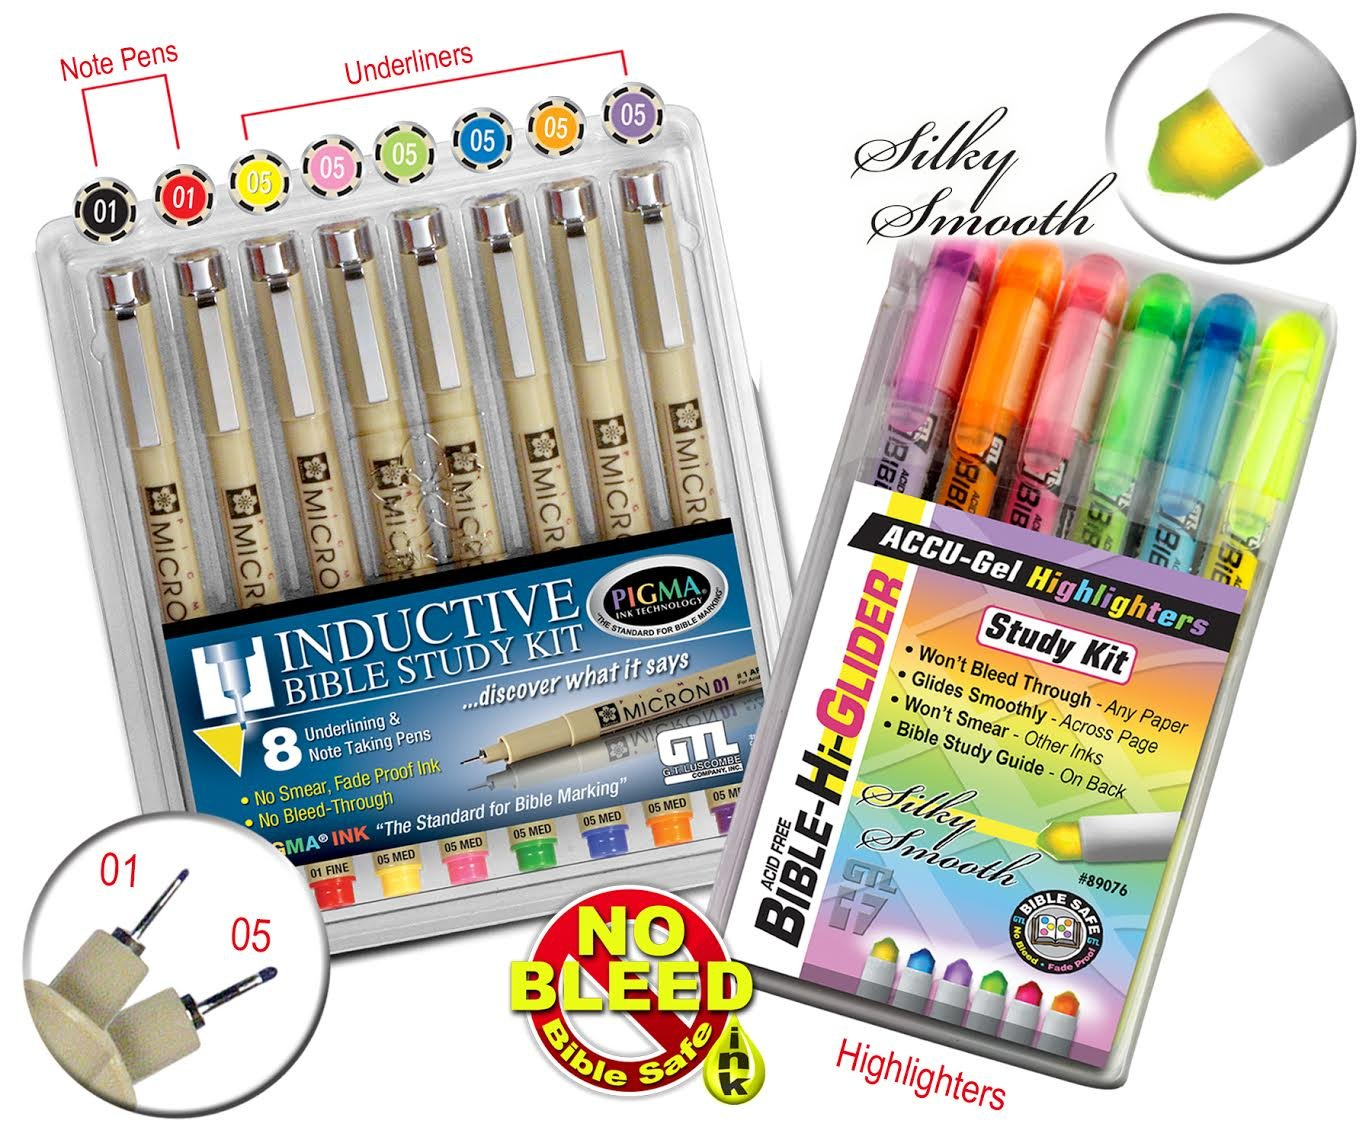 GTL Bible Study Bundle 6 Accu-Gel Gel Highlighters and 8 Pigma Micron Multi Color Fine and Medium Point by G.T. Luscombe Company, Inc. (Image #4)